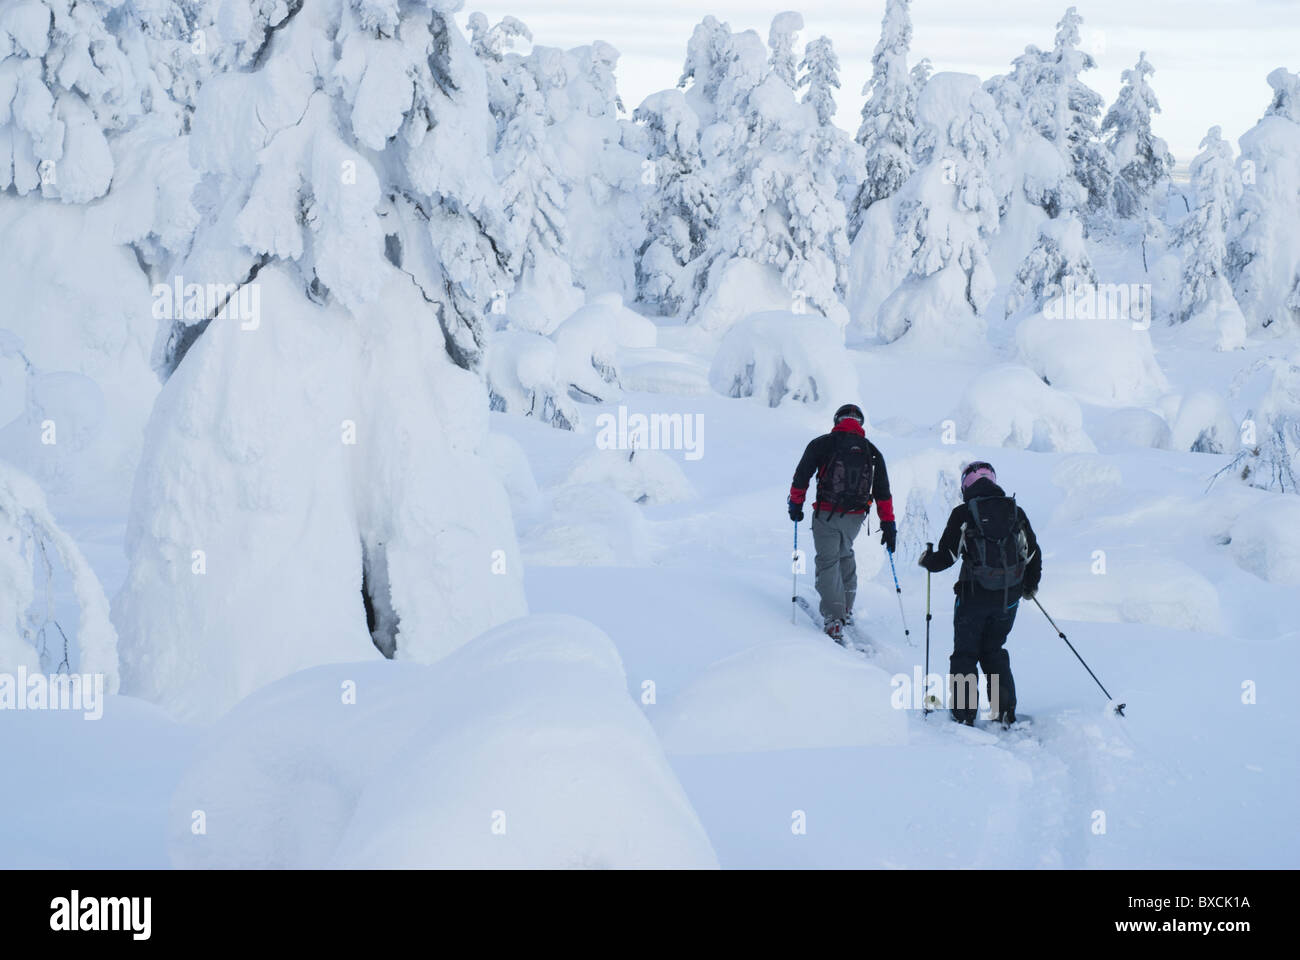 Off-piste skiers opening track among snow-clad trees in Pyhätunturi fell, Finnish Lapland - Stock Image